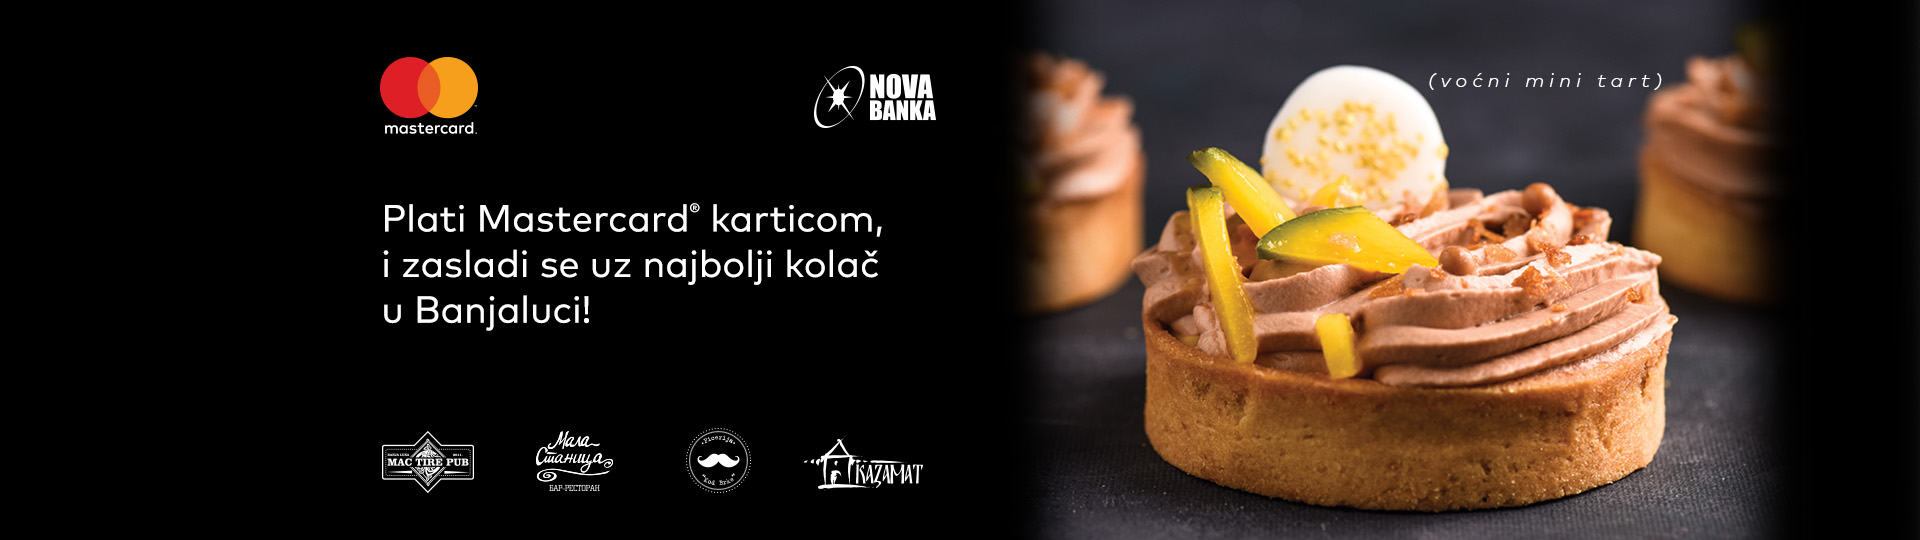 MC-Mini-tart-1920x540-Nova-Banka-1